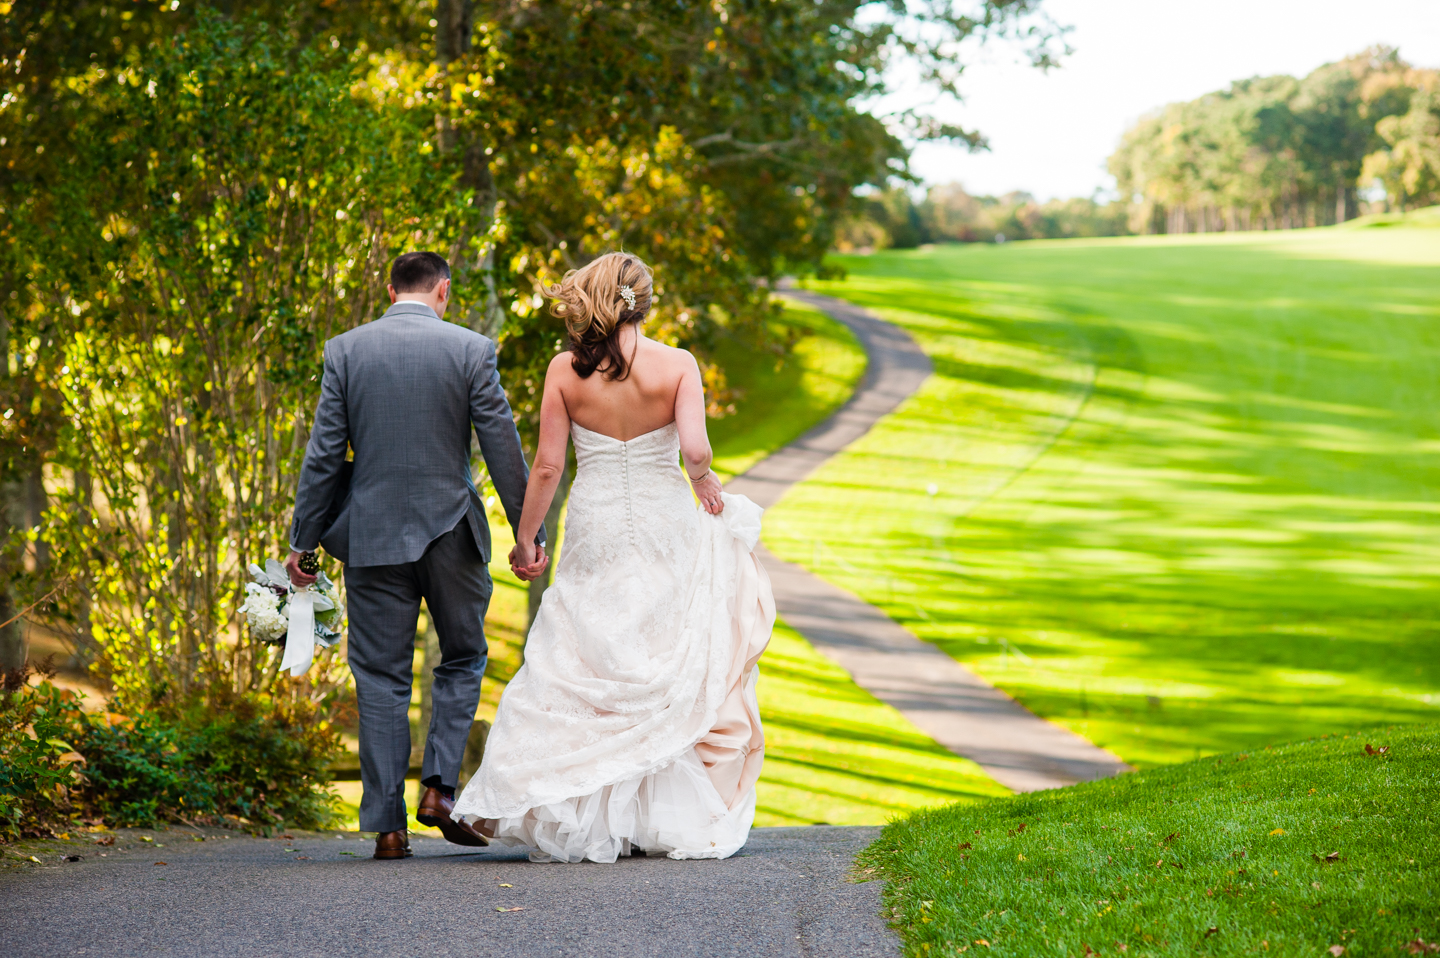 bride and groom holding hands on golf course path